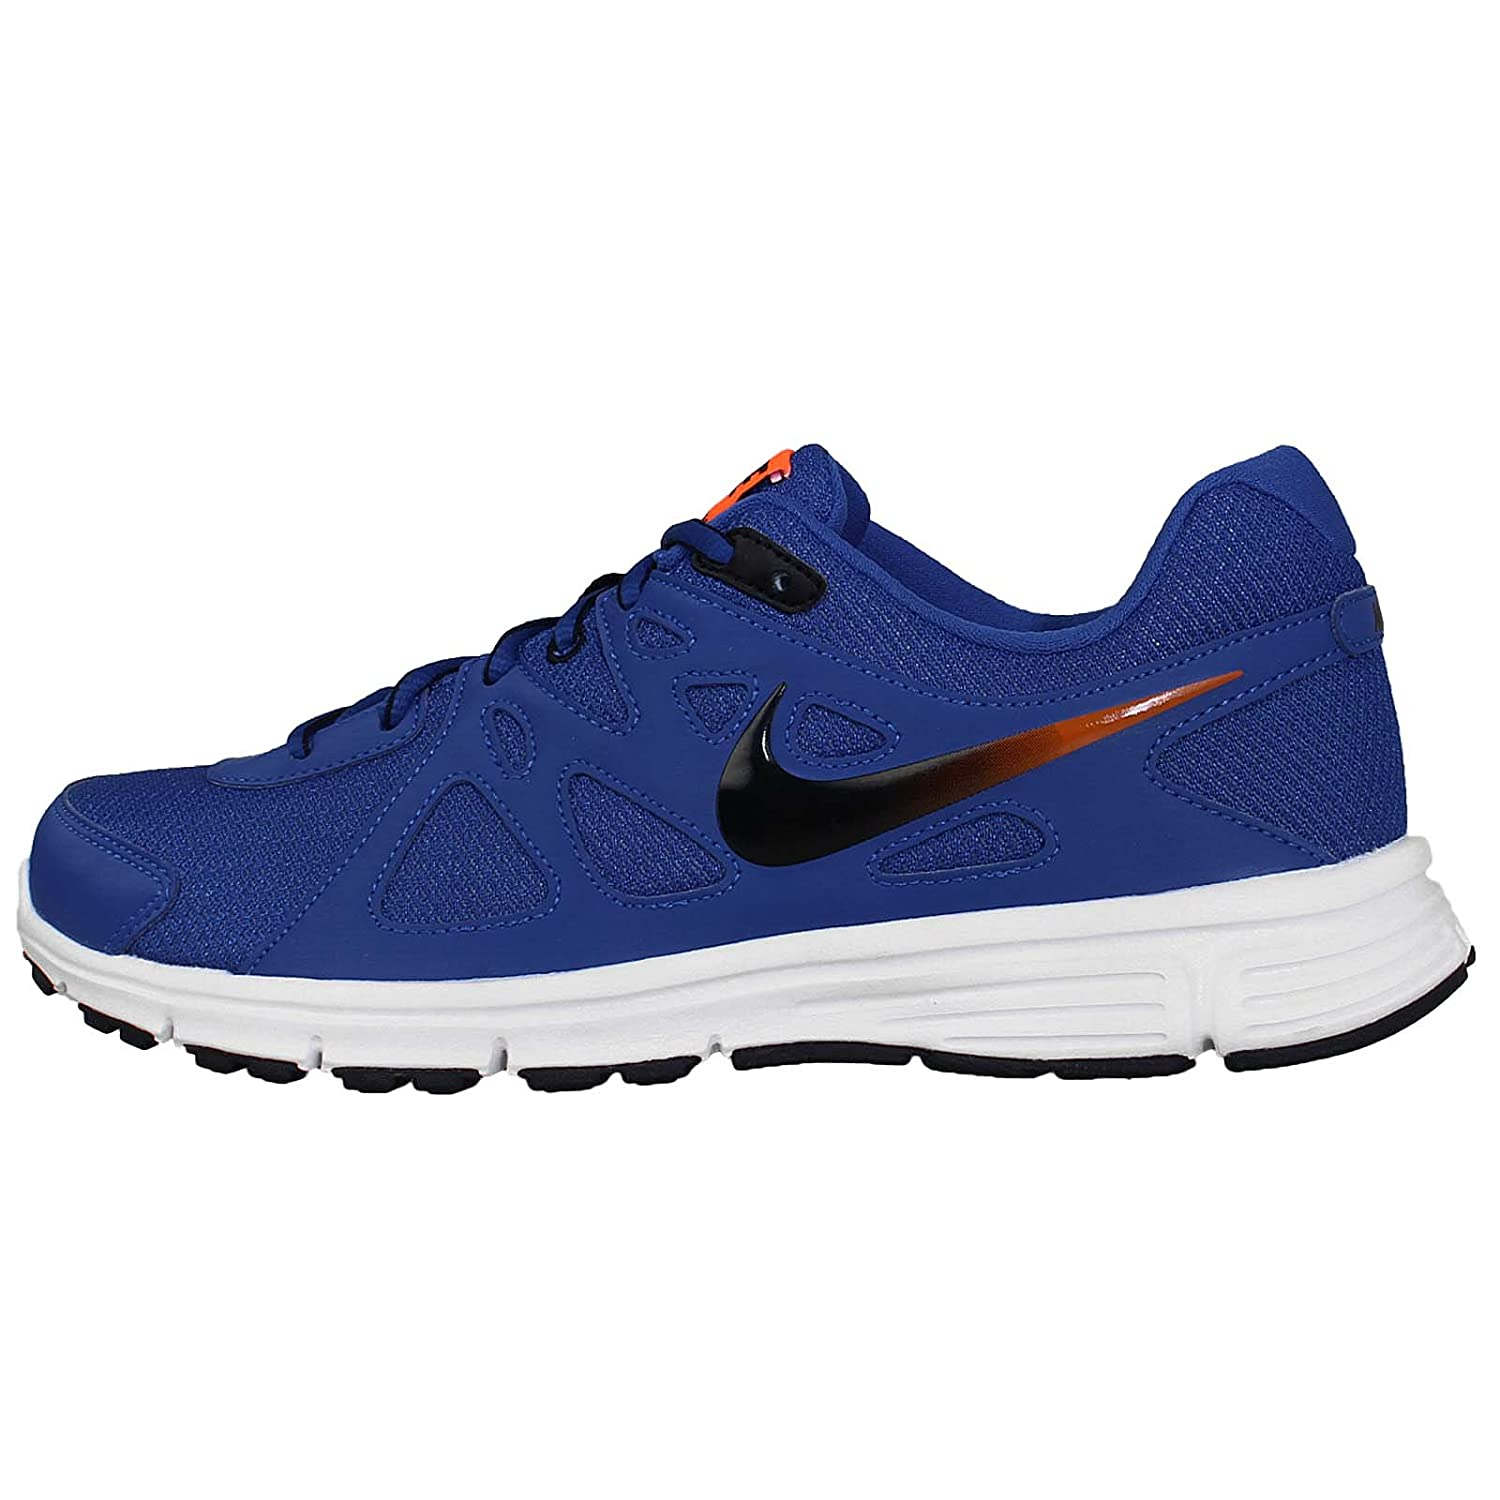 86410878678 Nike Men s Blue Mesh Running Shoes (554954-409) - (12 Uk India(47.5 Eu))   Buy Online at Low Prices in India - Amazon.in